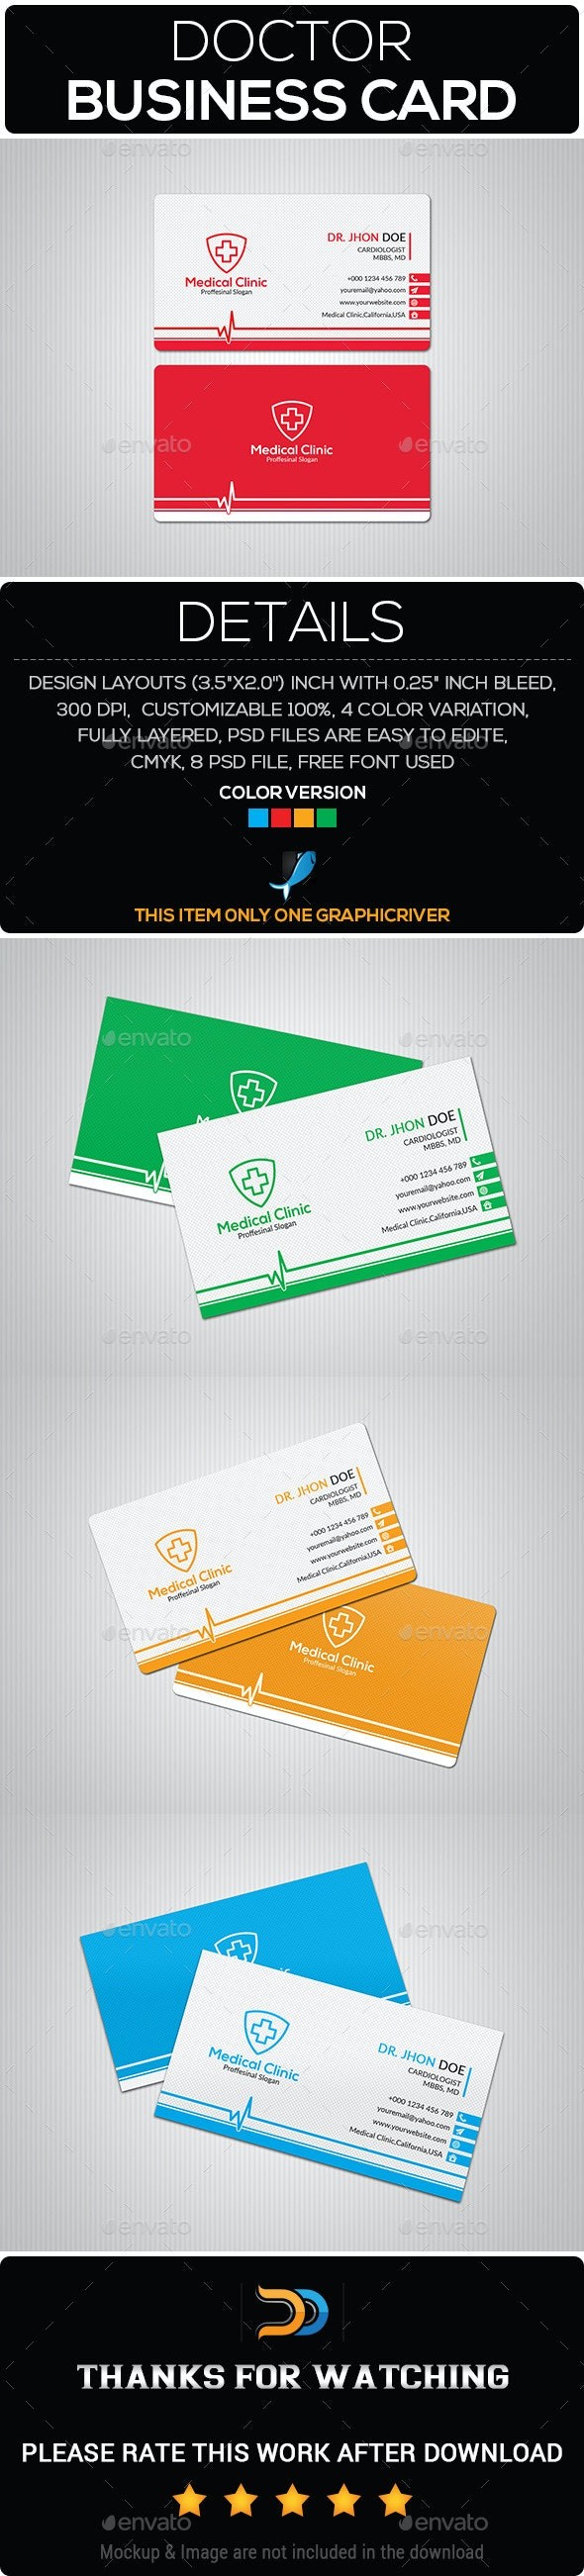 Doctor Business Card - Business Cards Print Templates